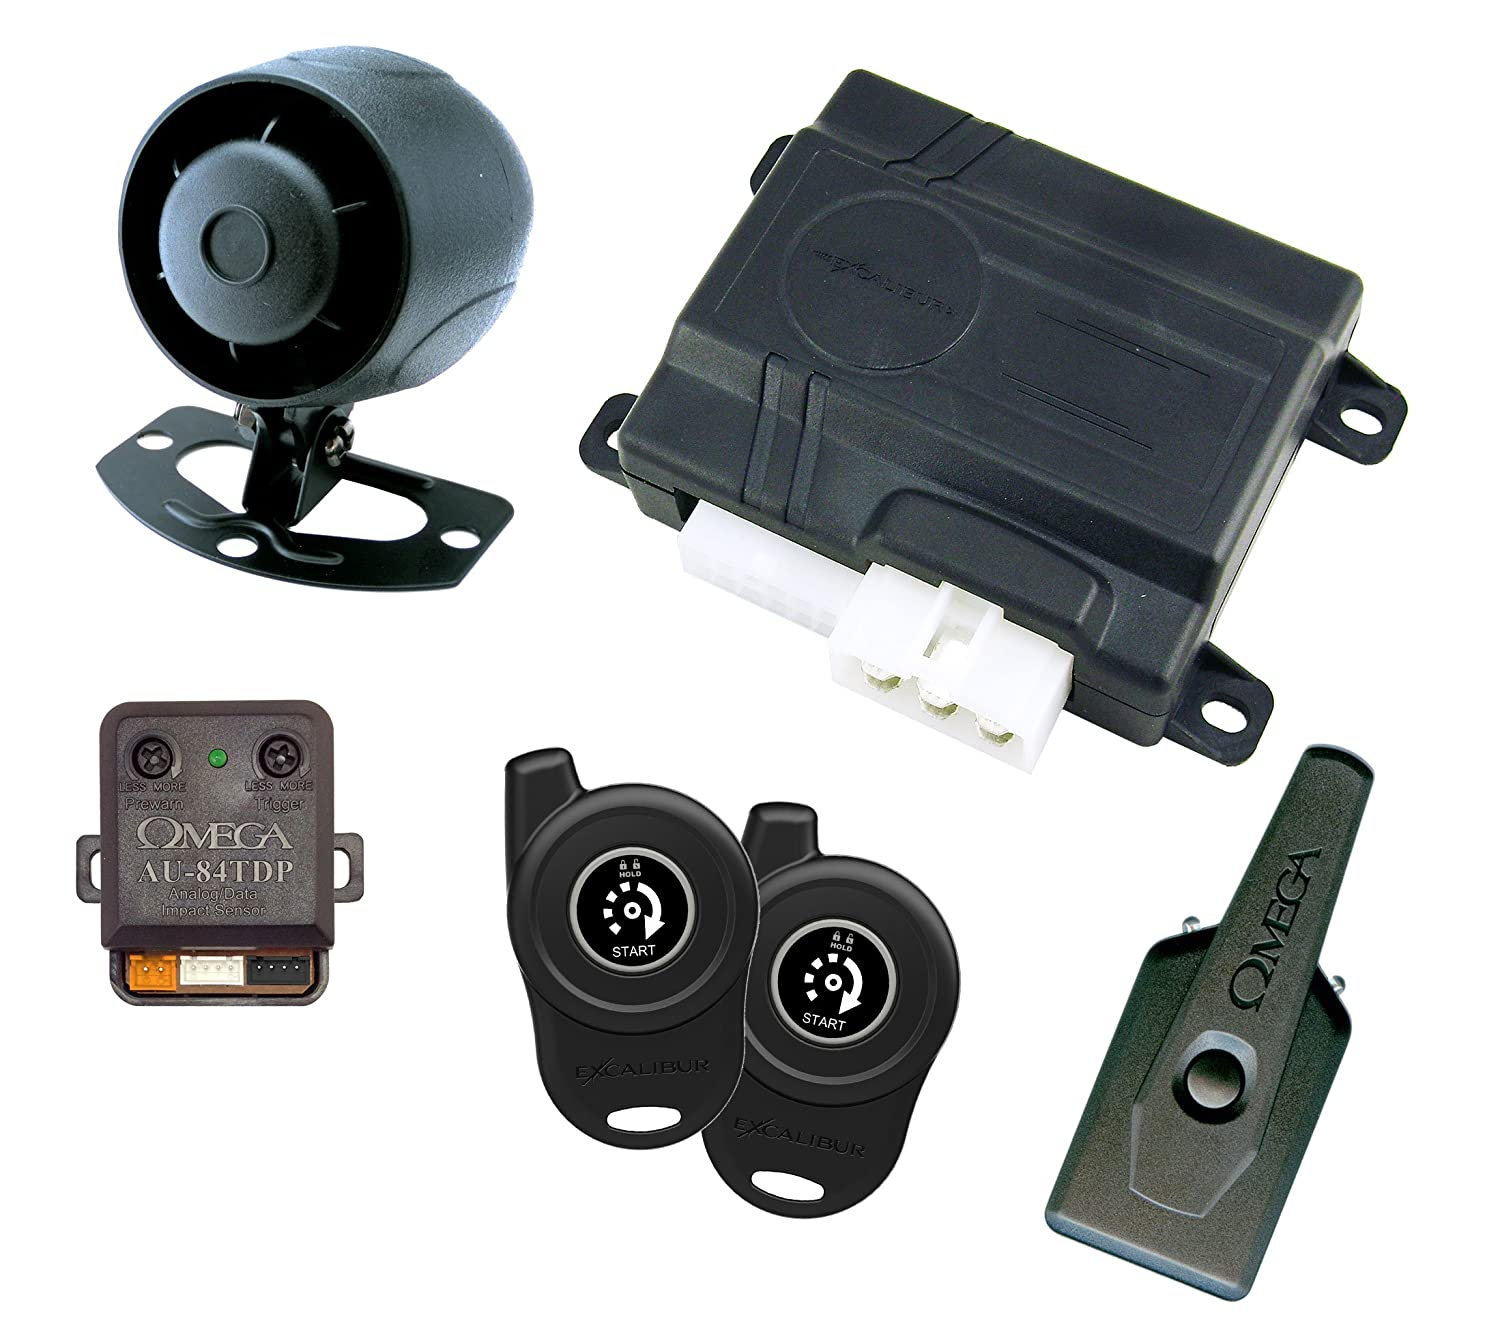 AL260EDP 1-Button Remote Start and Security System Excalibur